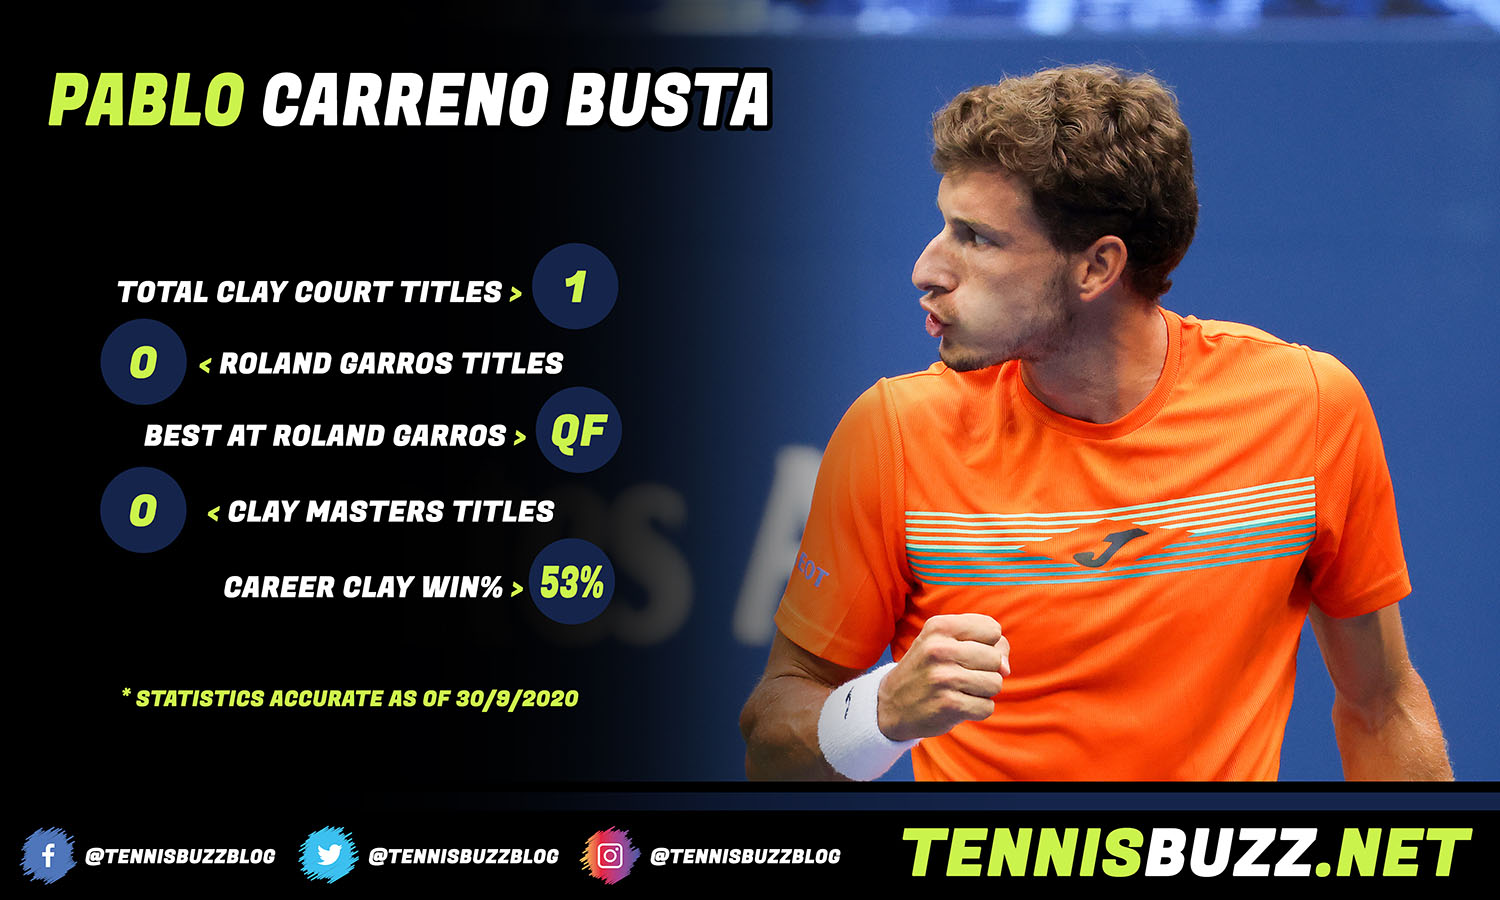 Pablo Carreno Busta infographic